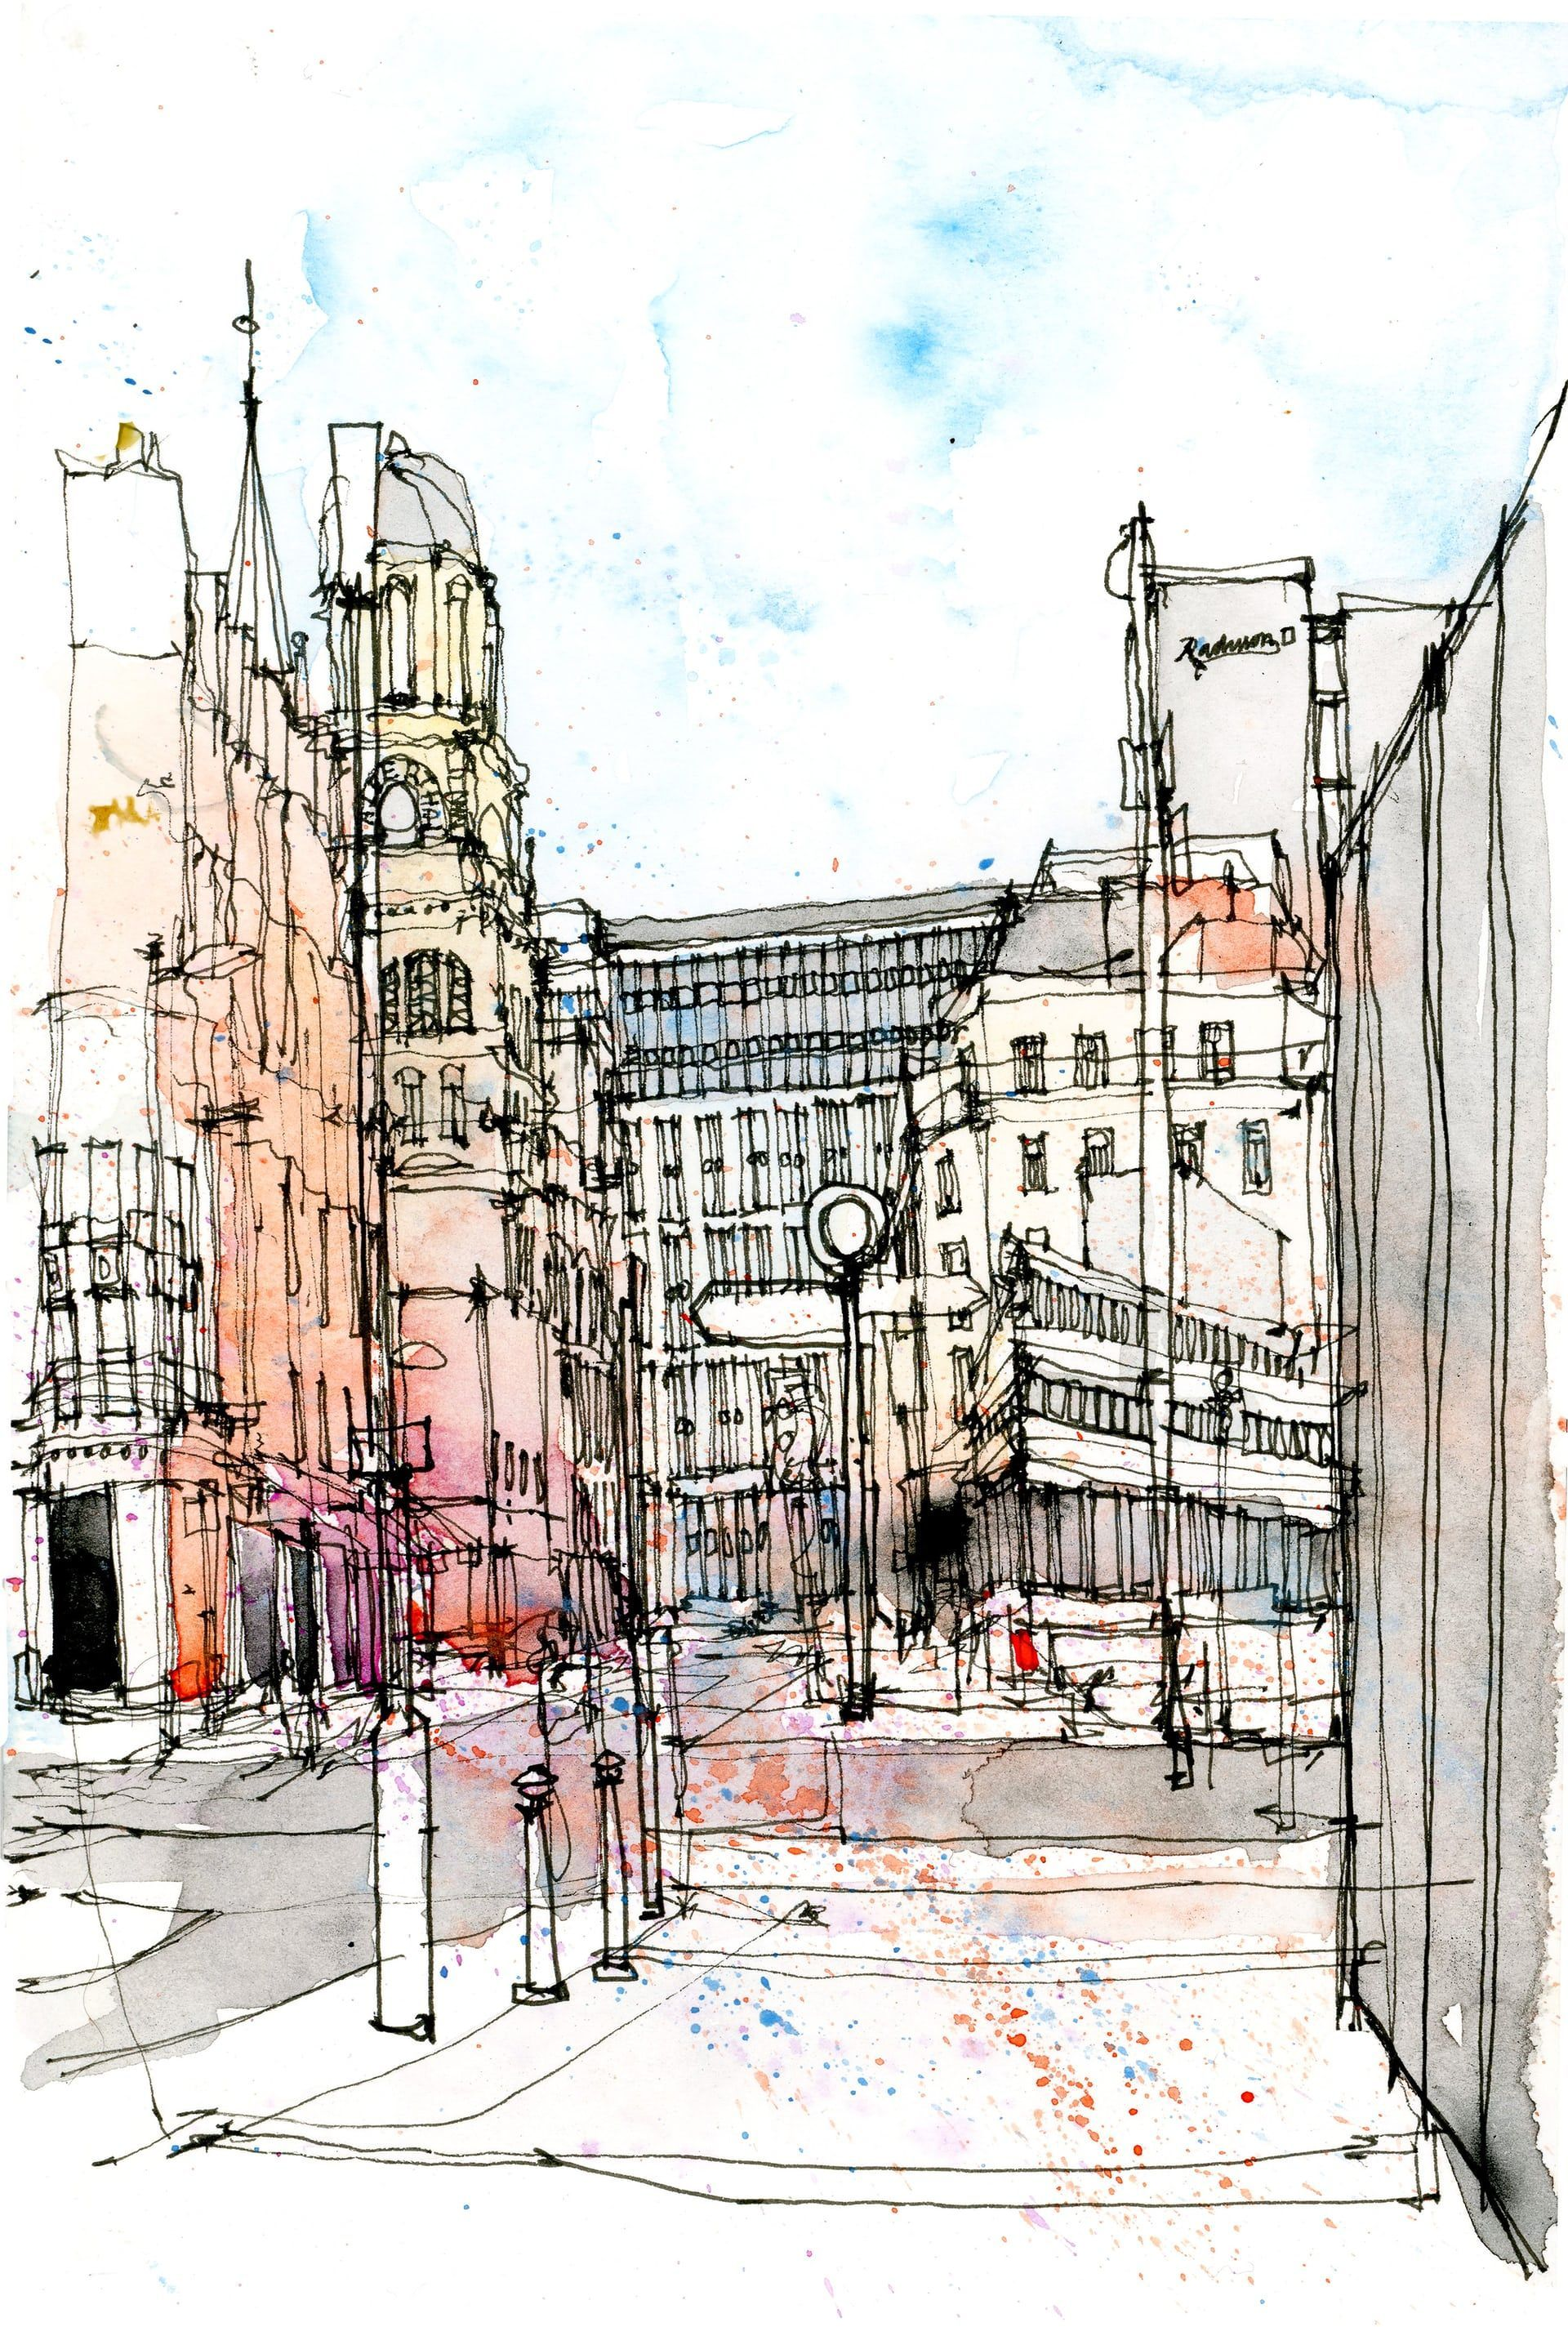 Sketch in the city: the artist capturing urban clutter – in pictures